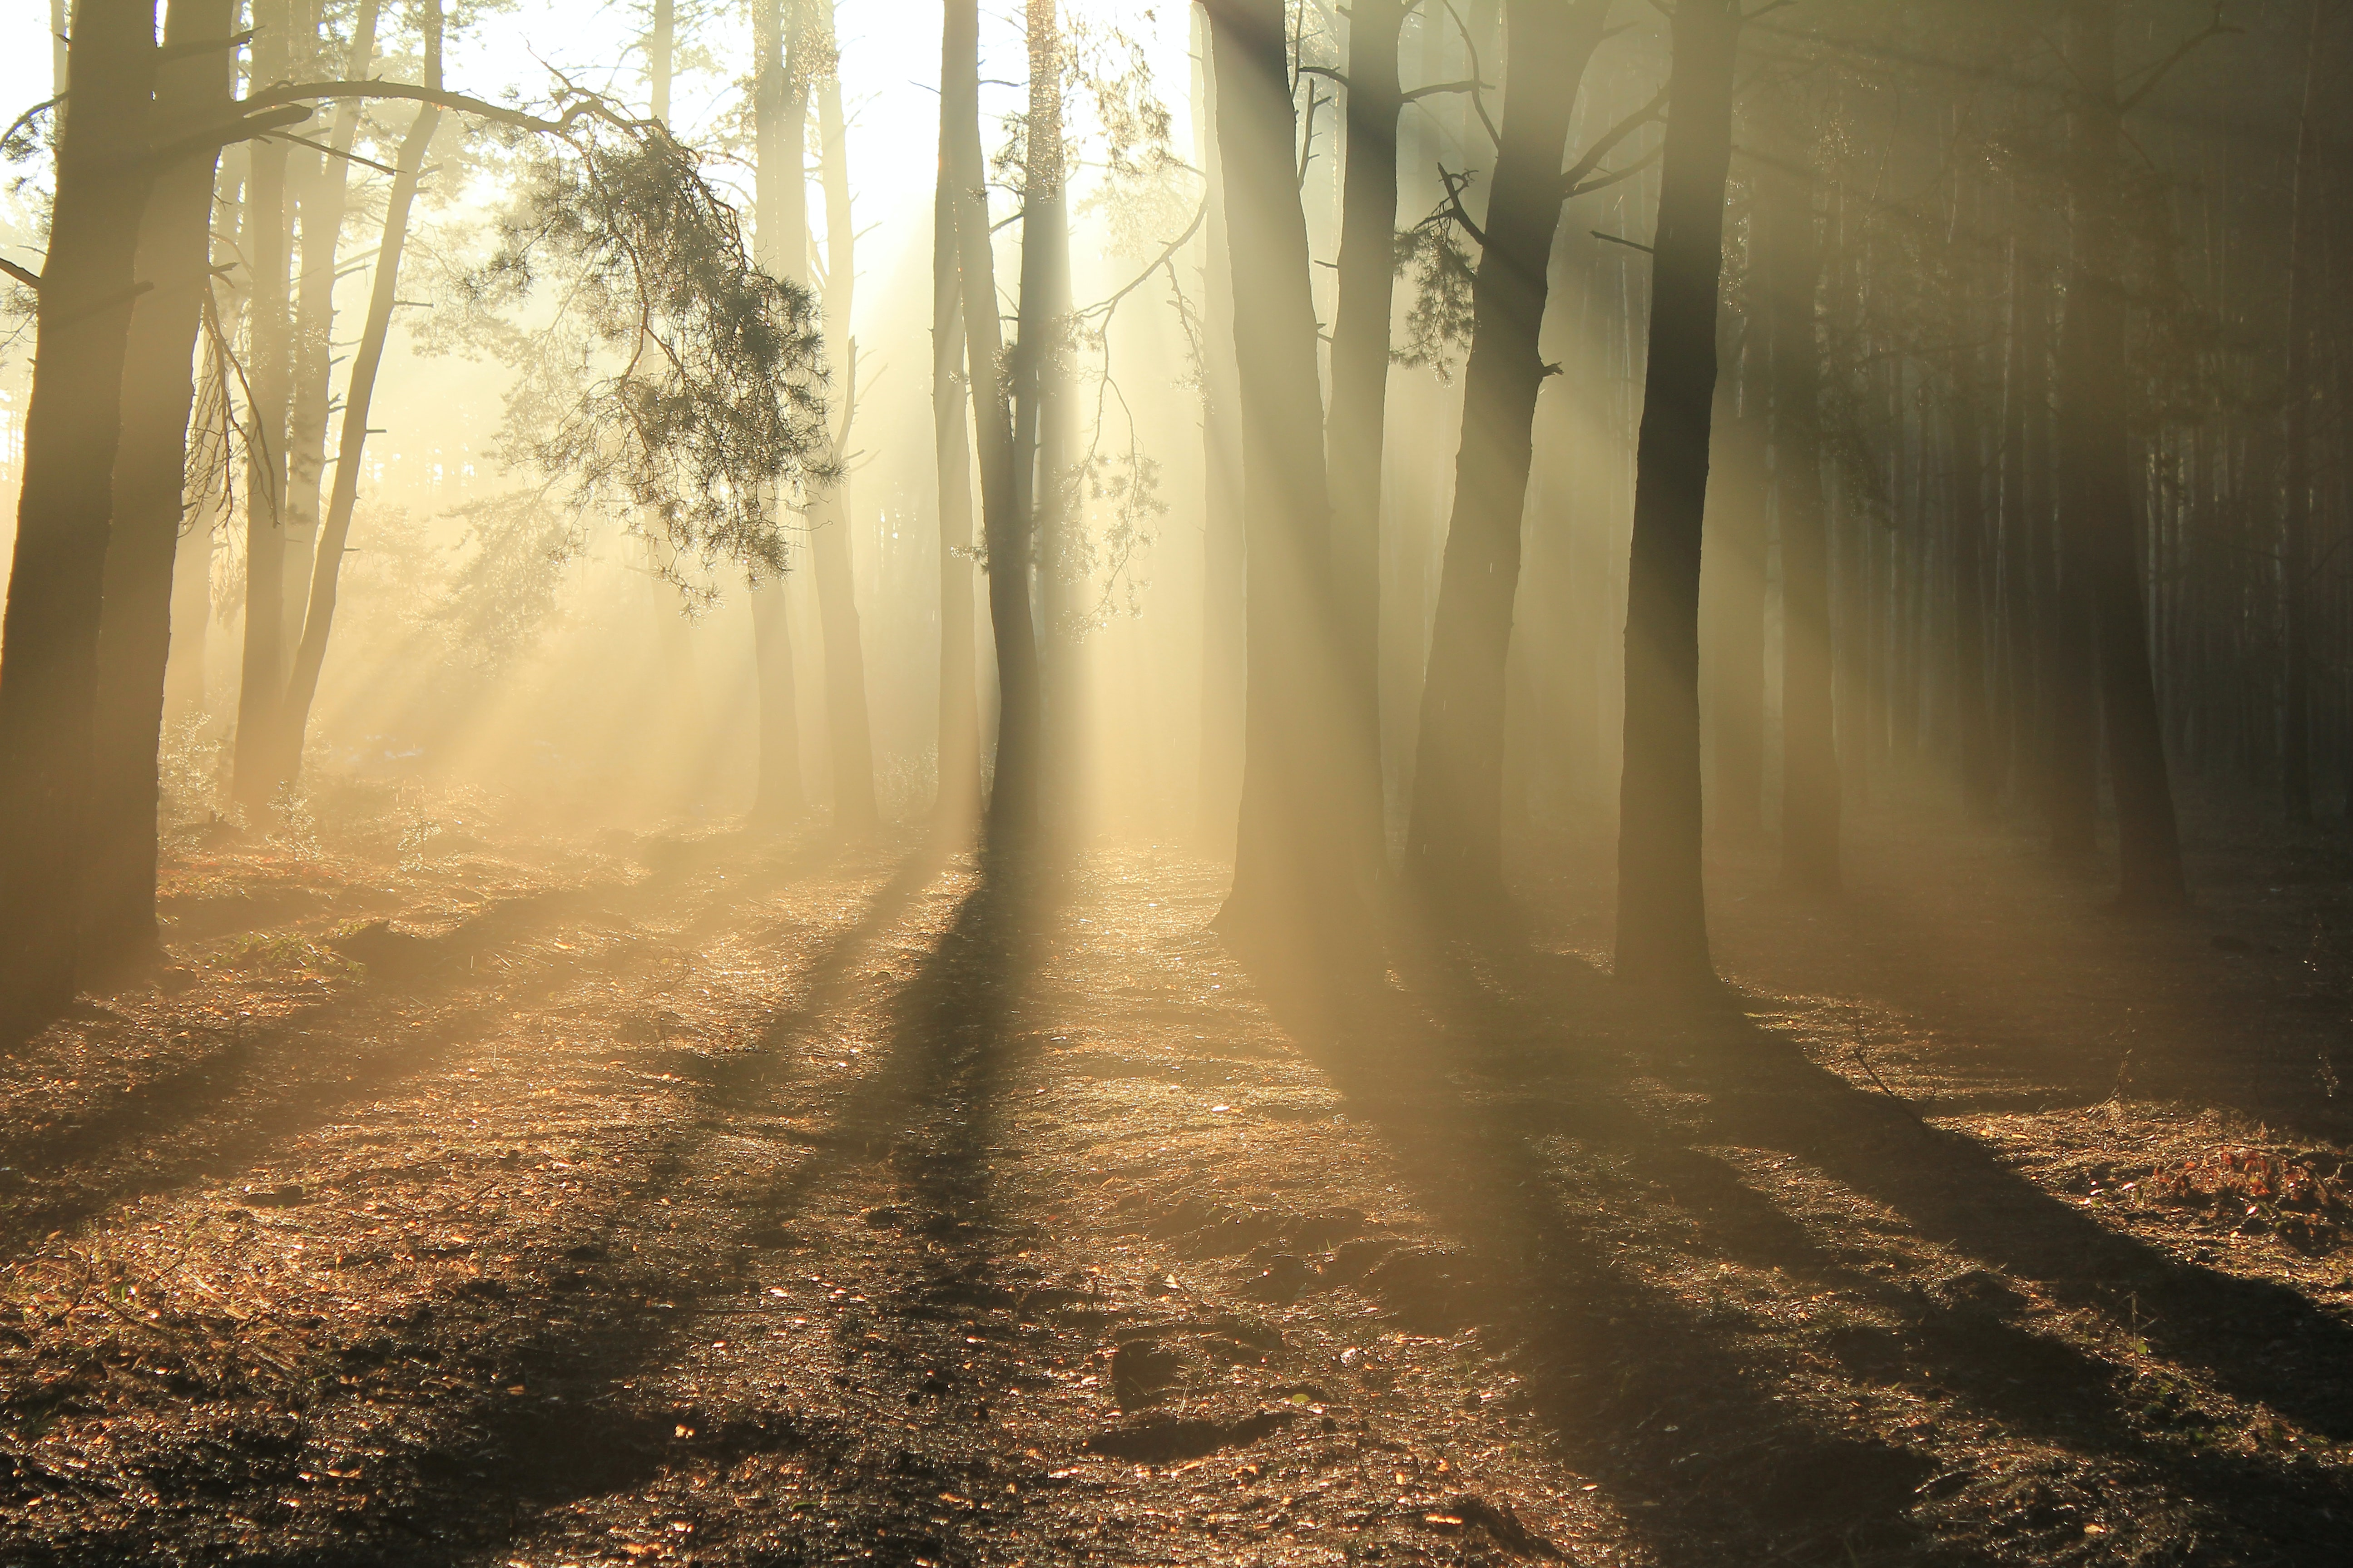 golden hour photography of forest trees